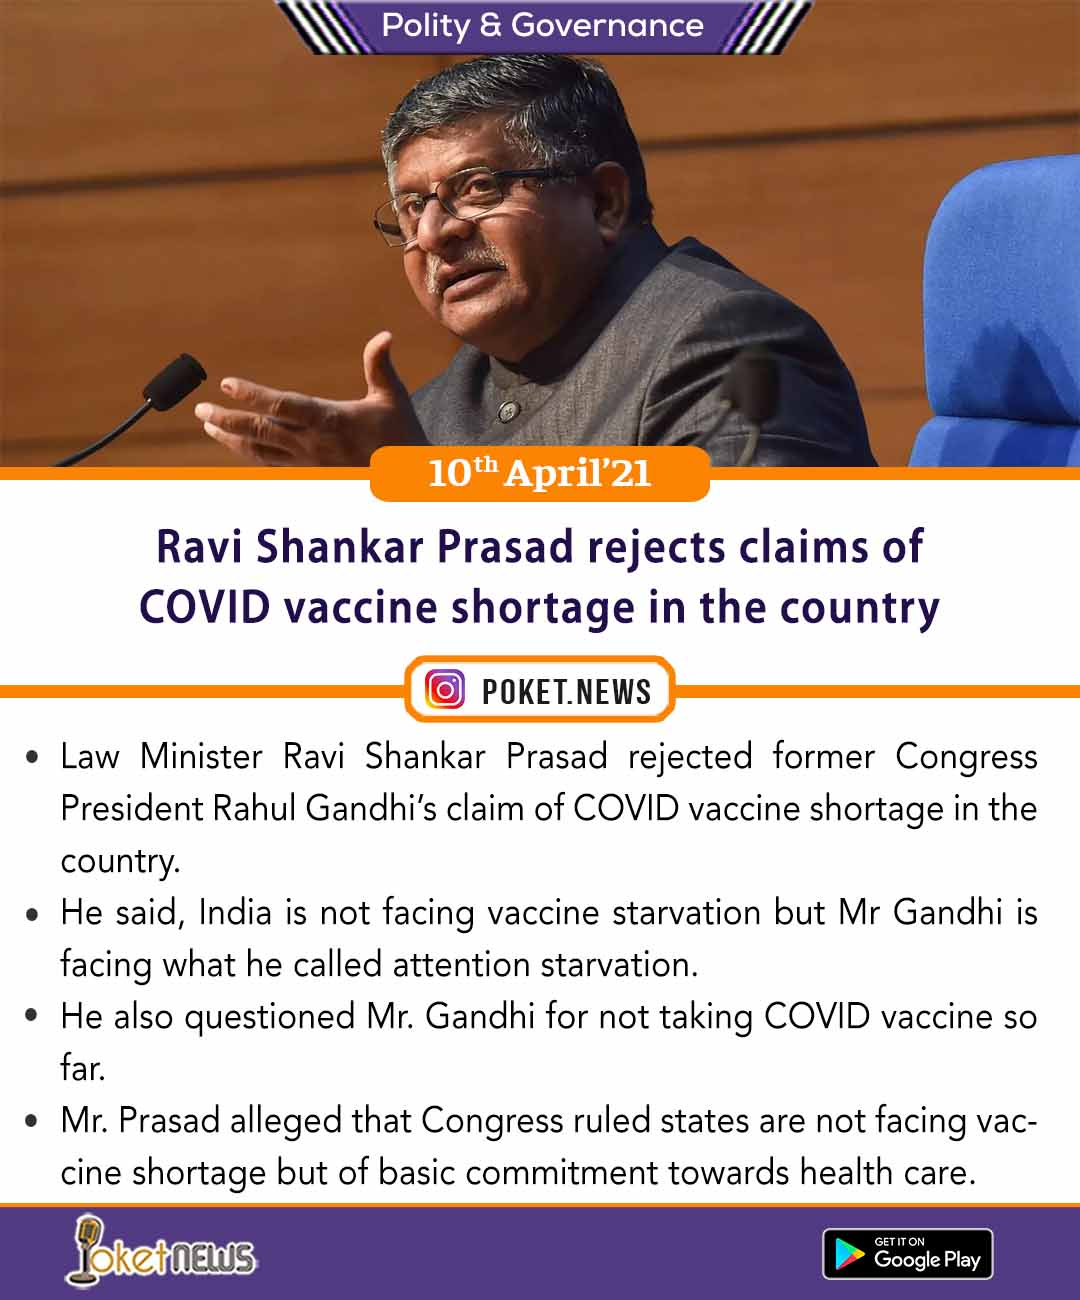 Ravi Shankar Prasad rejects claims of COVID vaccine shortage in the country